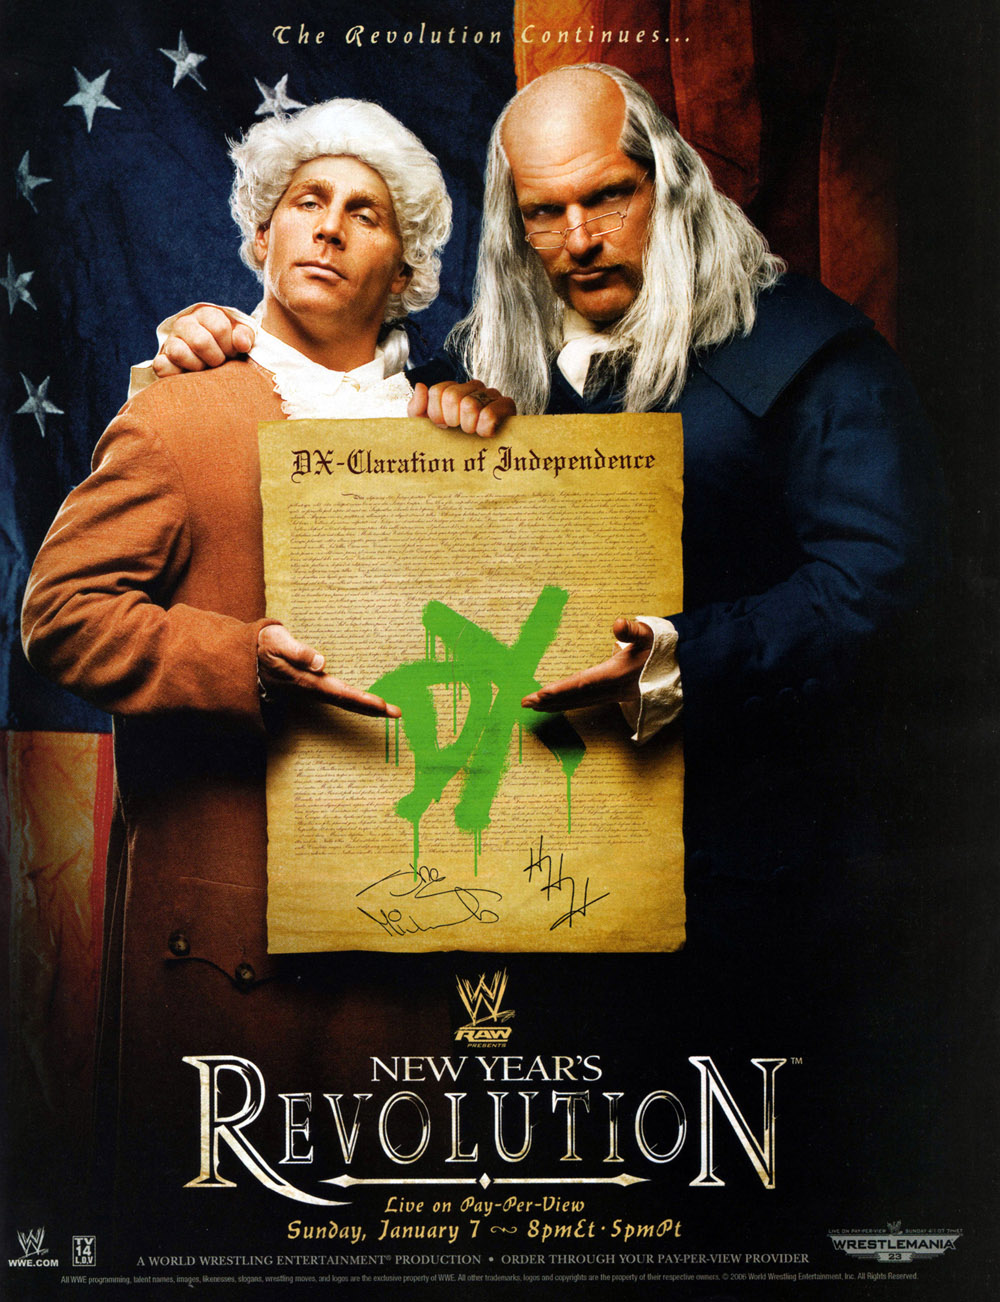 Image result for WWE New Year's Resolution 2007